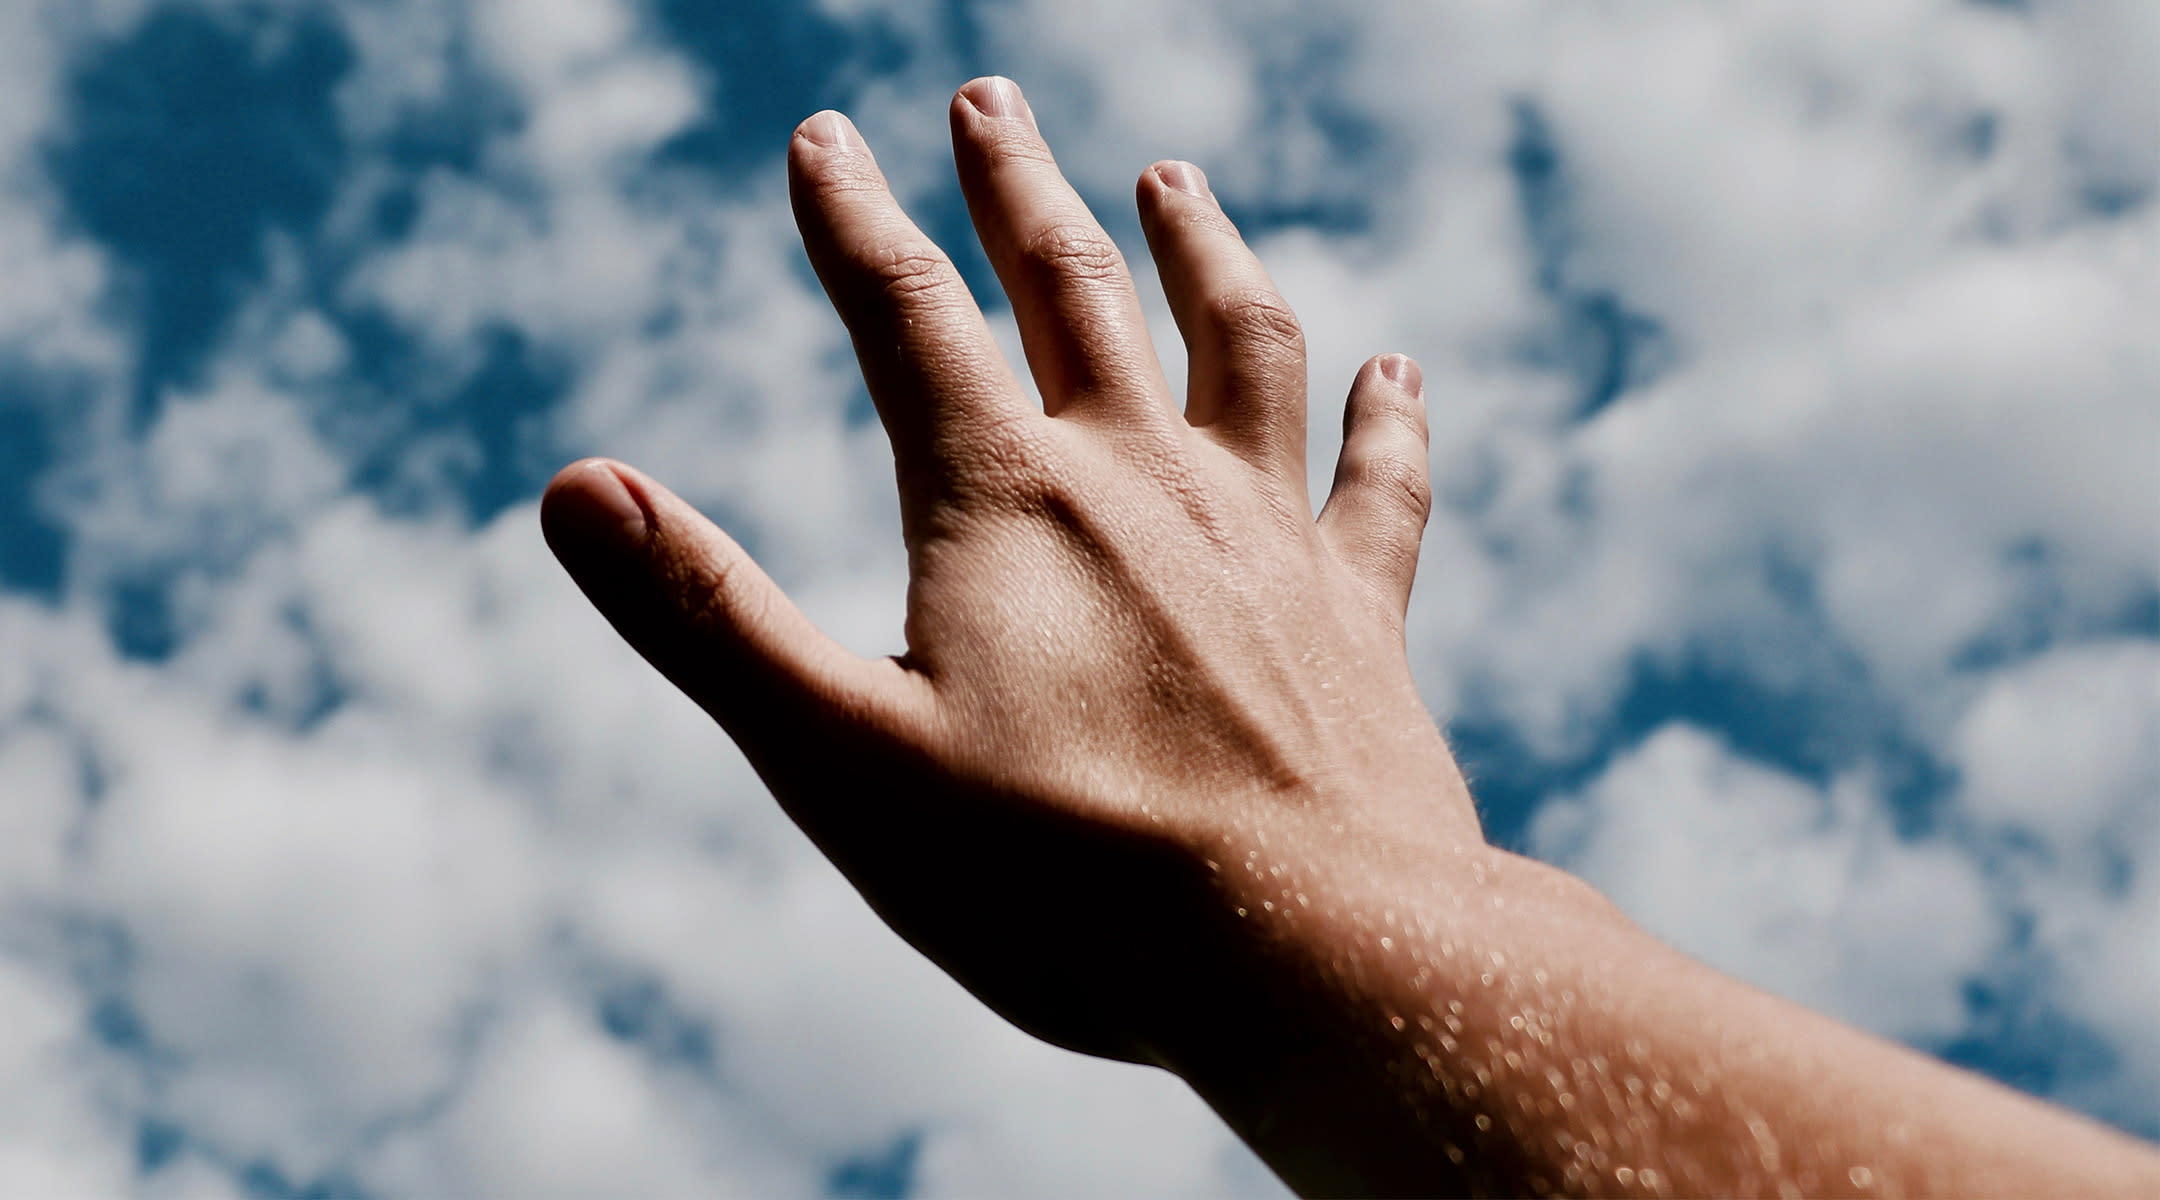 hand reaching out in the sky